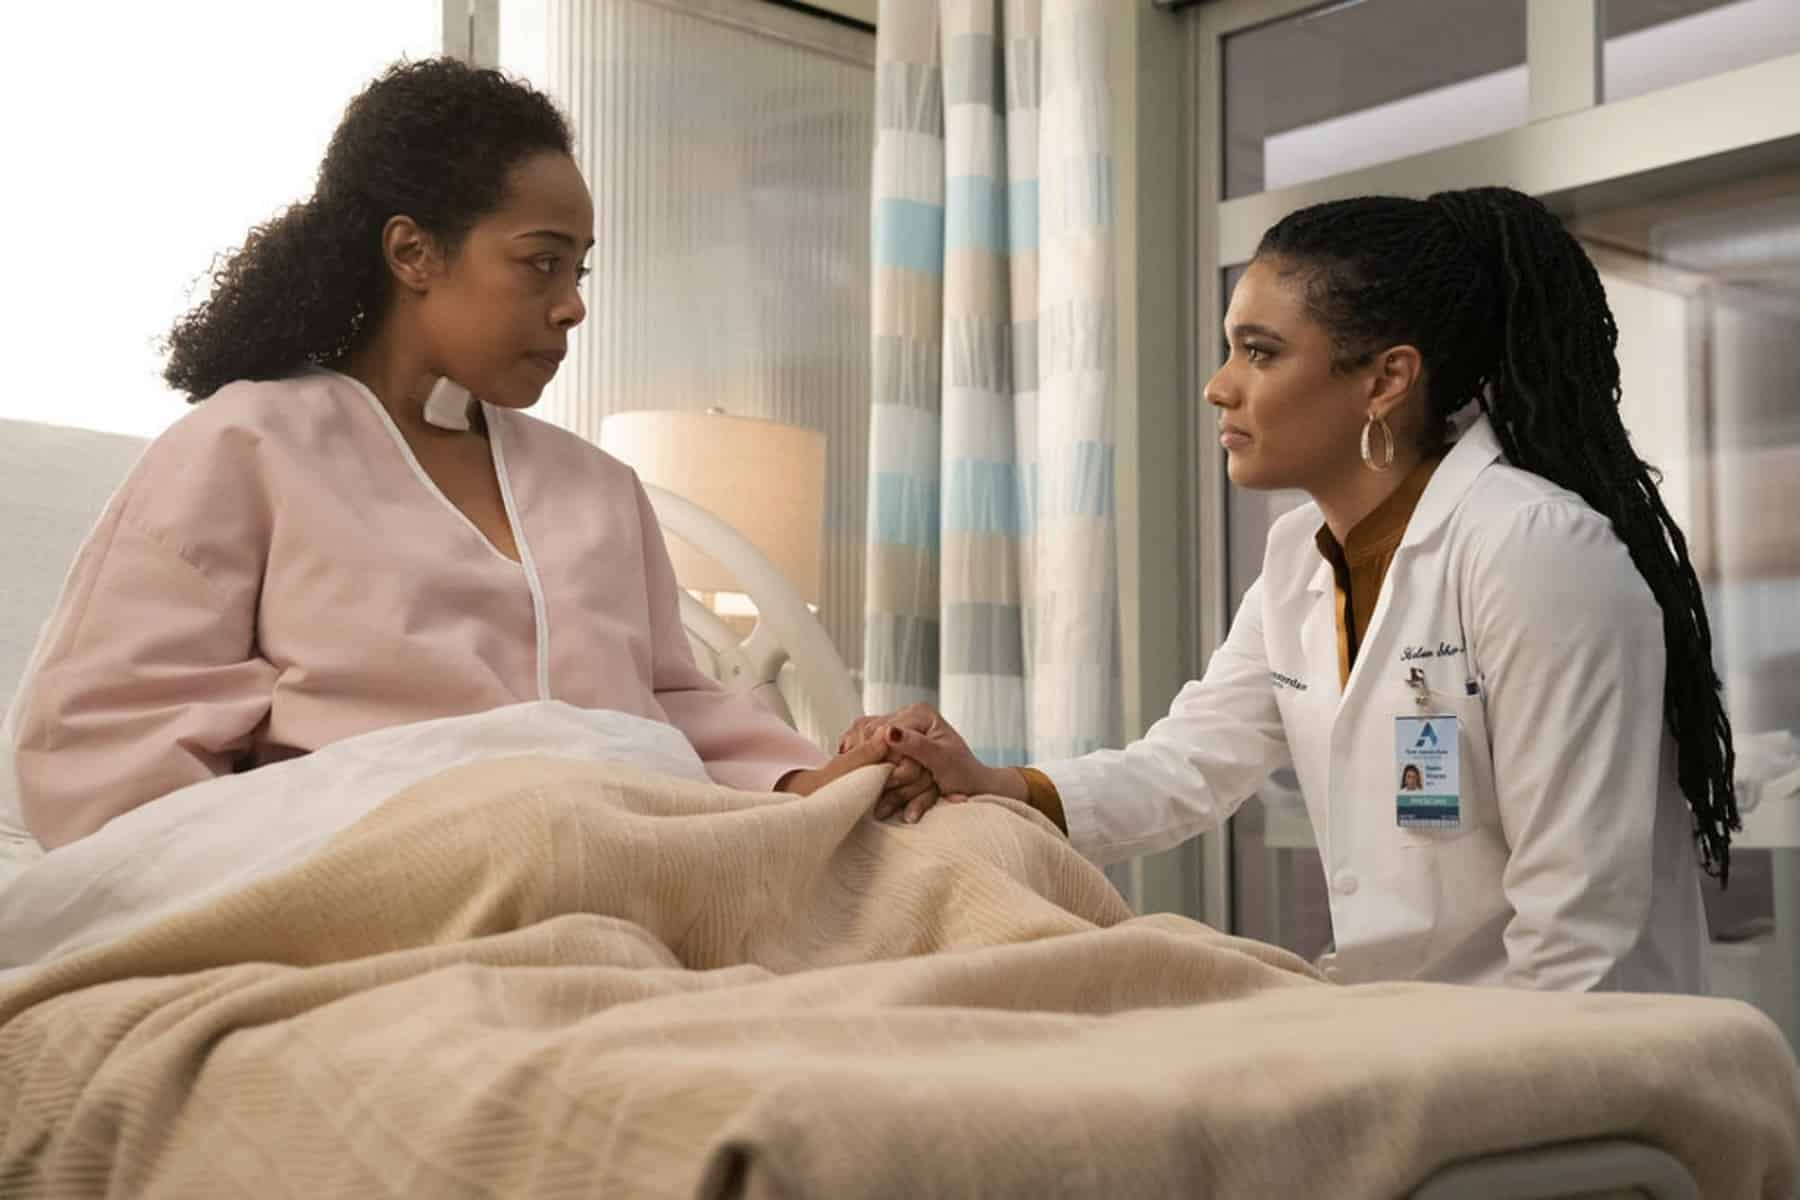 What Do You Most Want To See When It Comes To New Amsterdam Season 3 Episode 10?